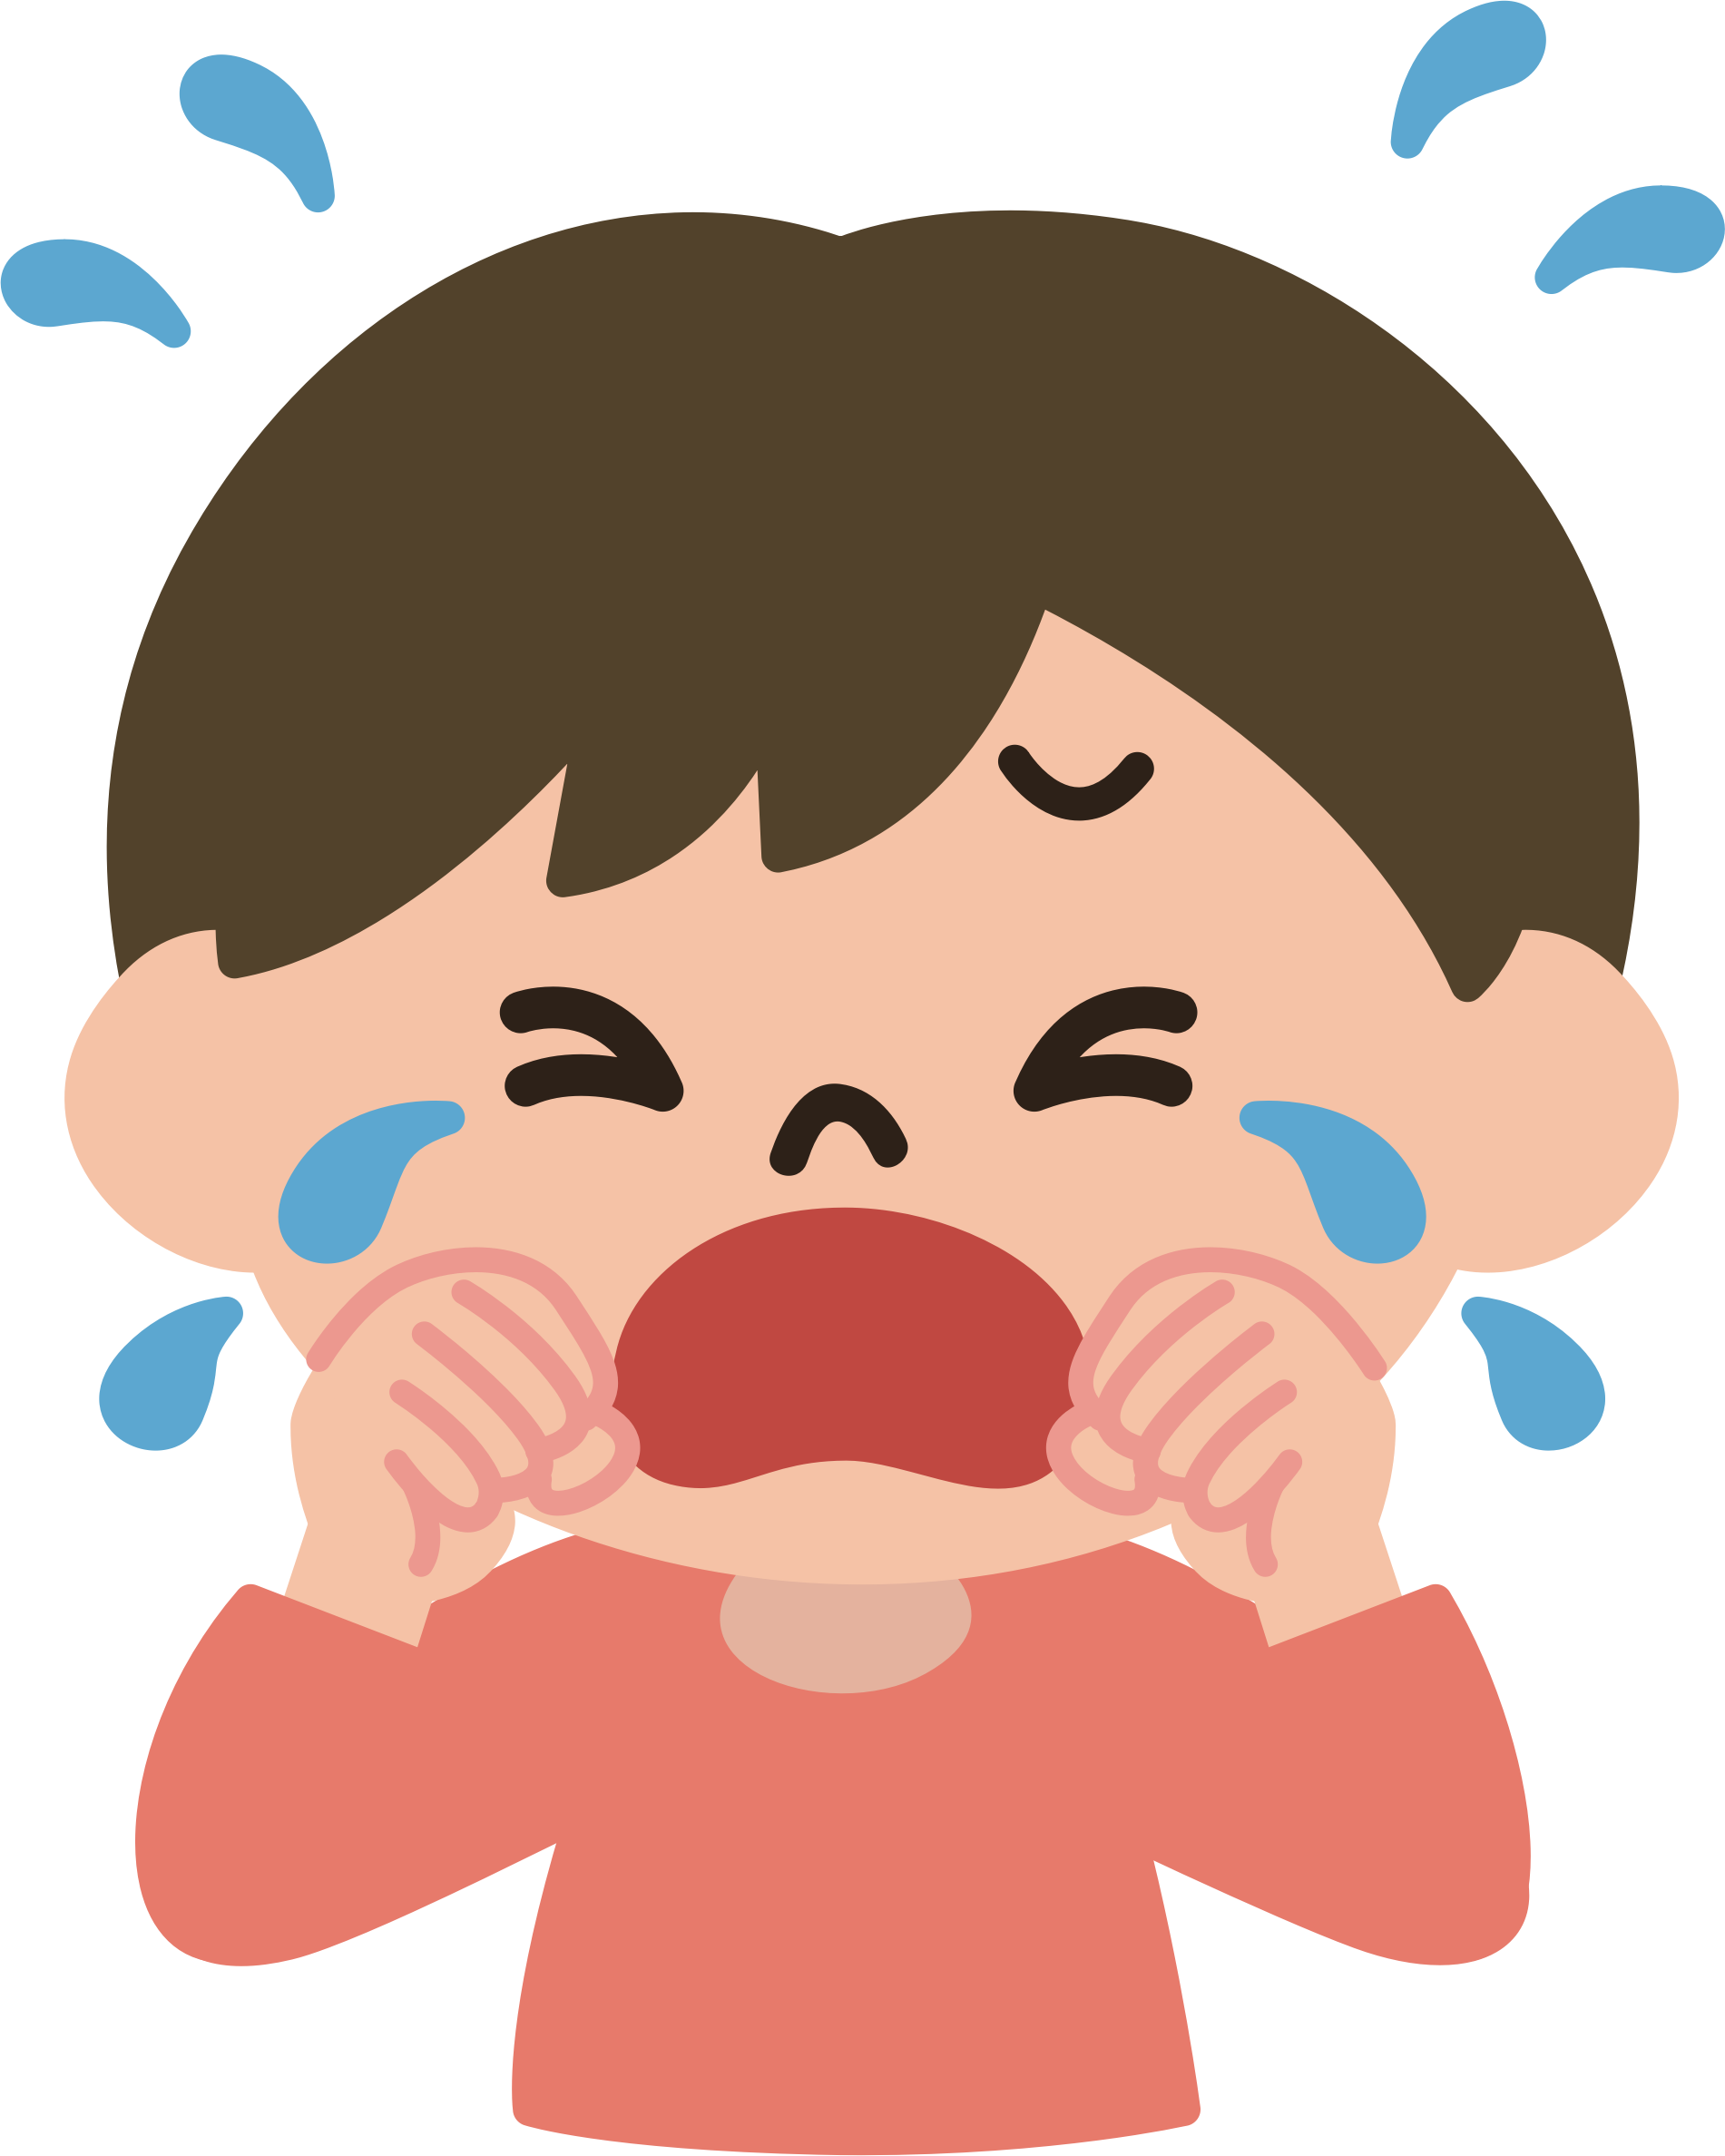 14 cliparts for free. Download Crying clipart and use in.